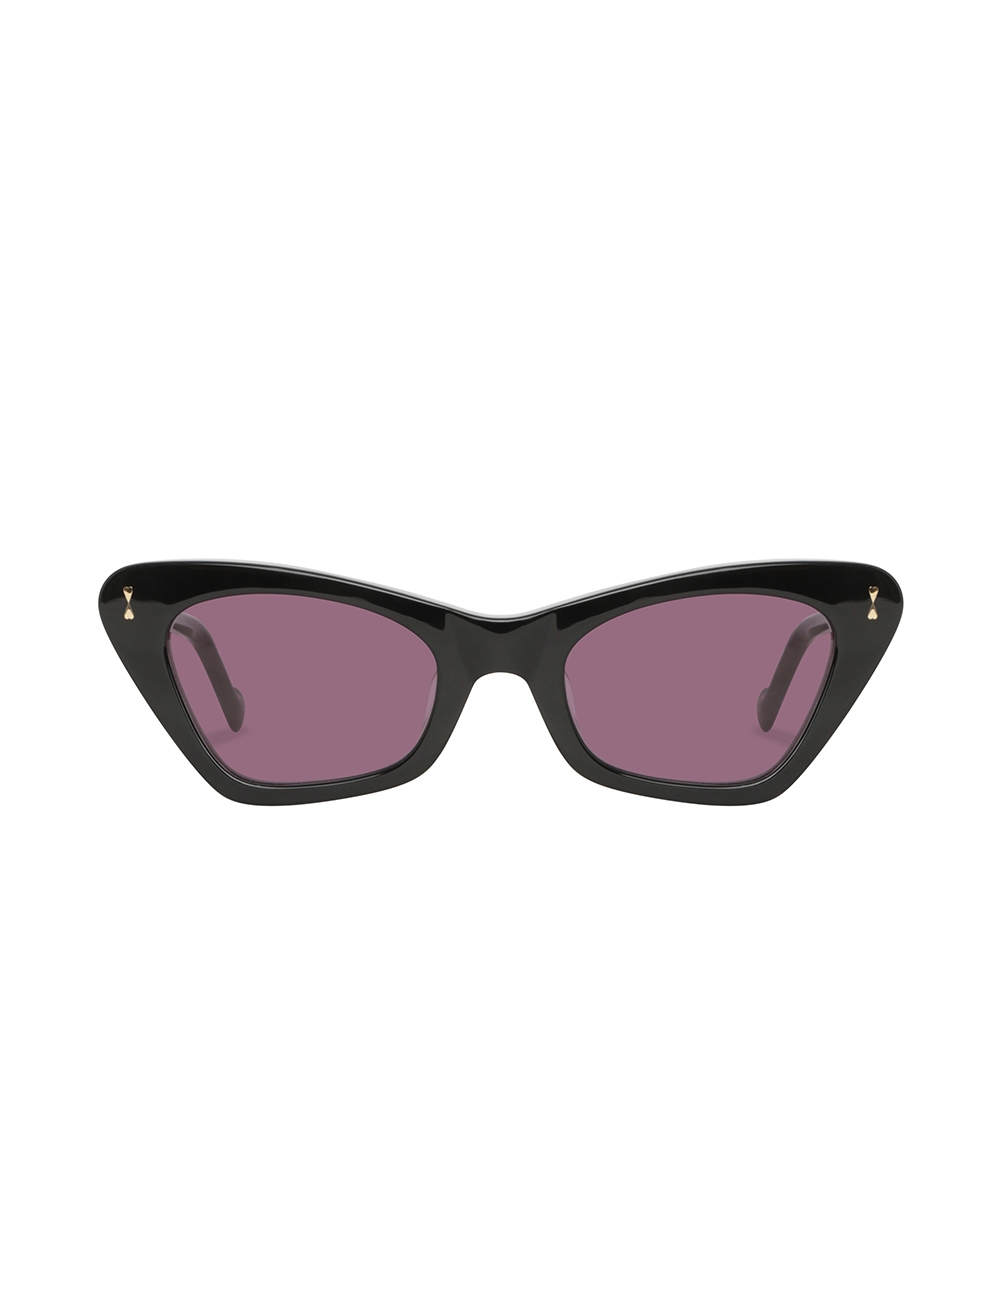 Tallow Sunglasses